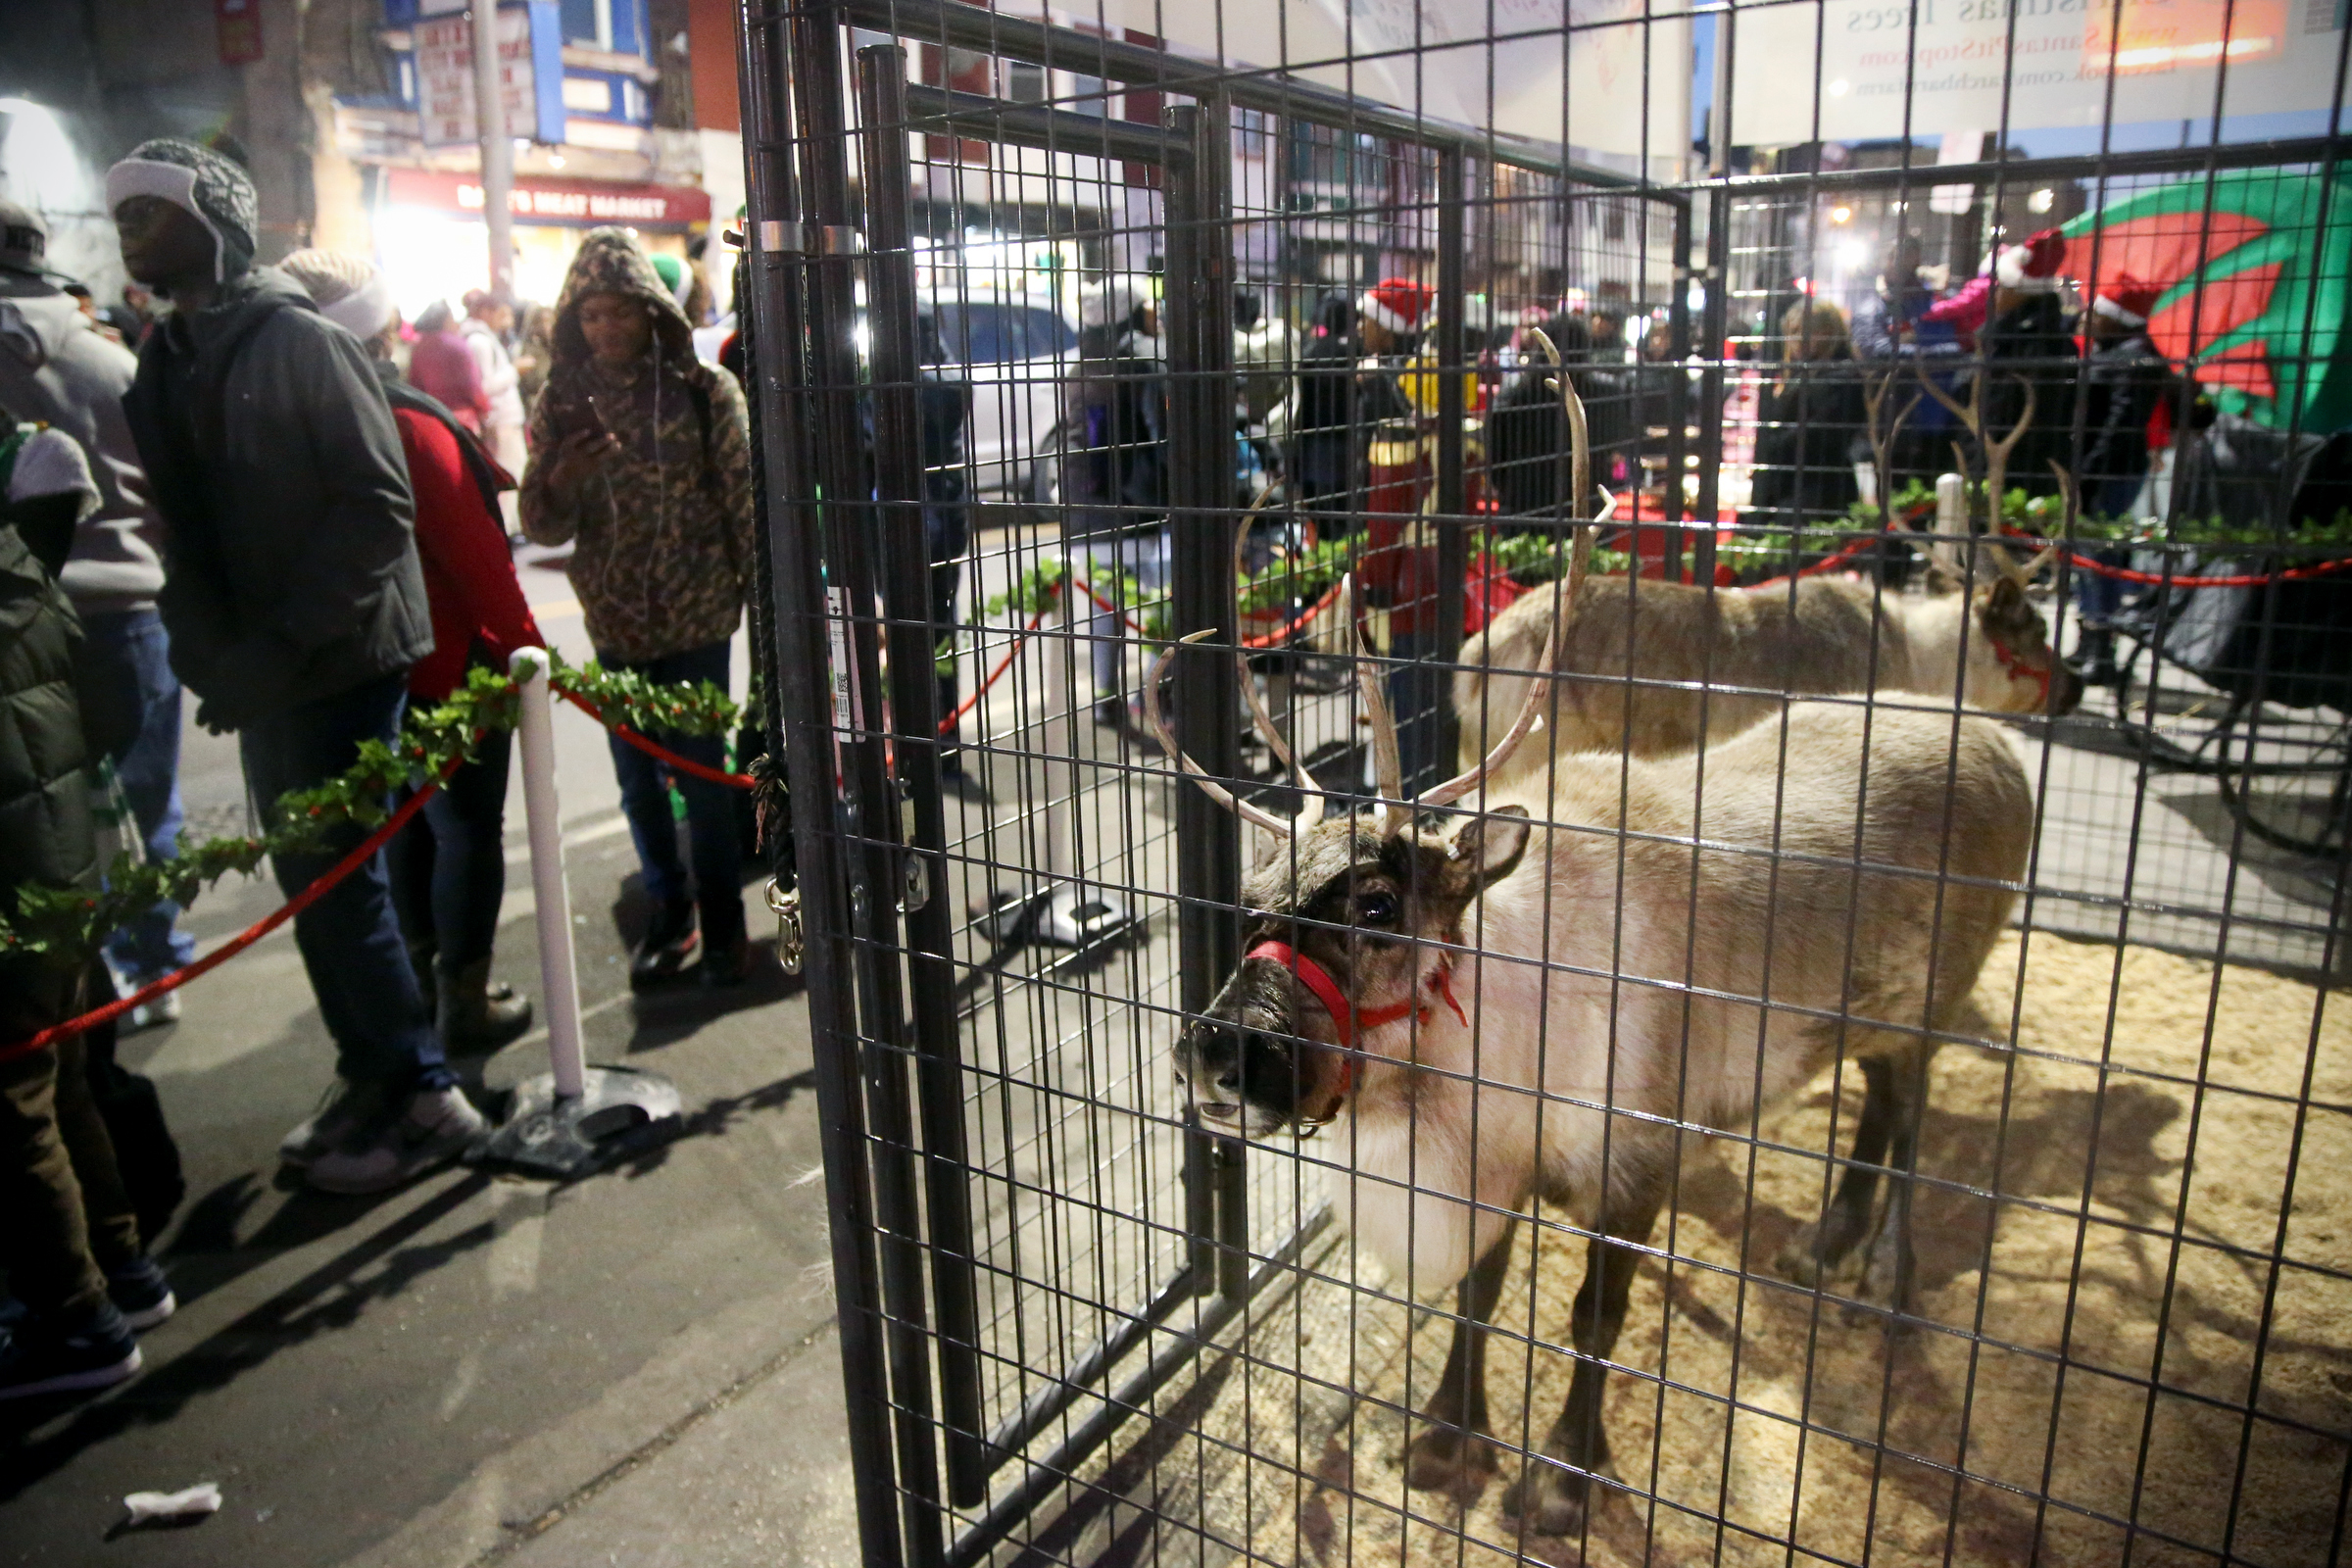 Live reindeer stand in a pen during a Christmas toy giveaway organized by Saudia Shuler in front of her restaurant, Country Cooking, in North Philadelphia on Wednesday, Dec. 20, 2017. TIM TAI / Staff Photographer